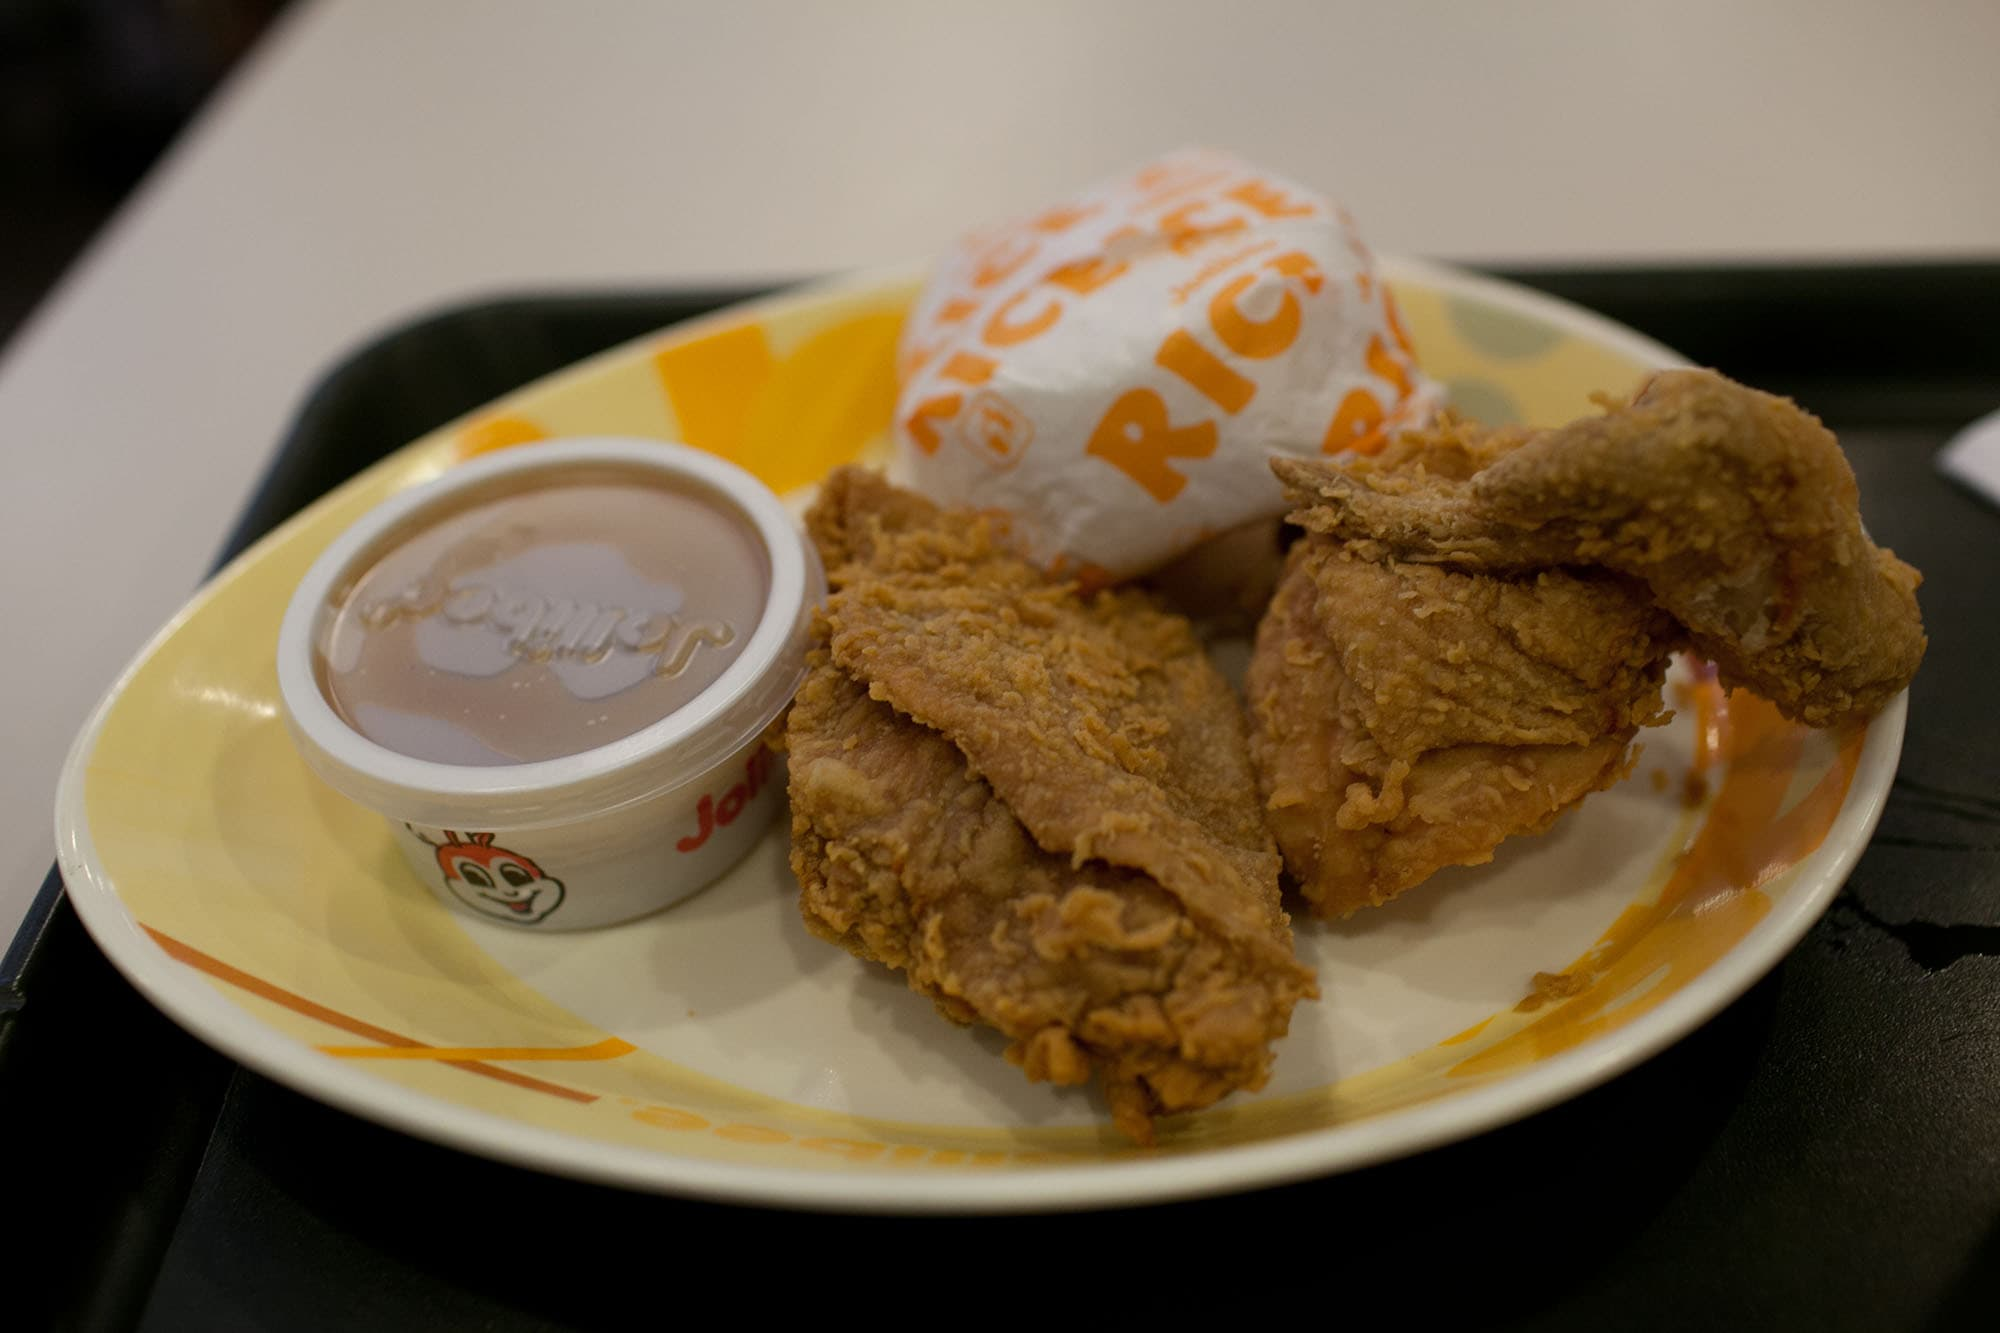 Food in the Philippines: What I ate in The Philippines. Jollibee fried chicken in Cebu, Philippines.